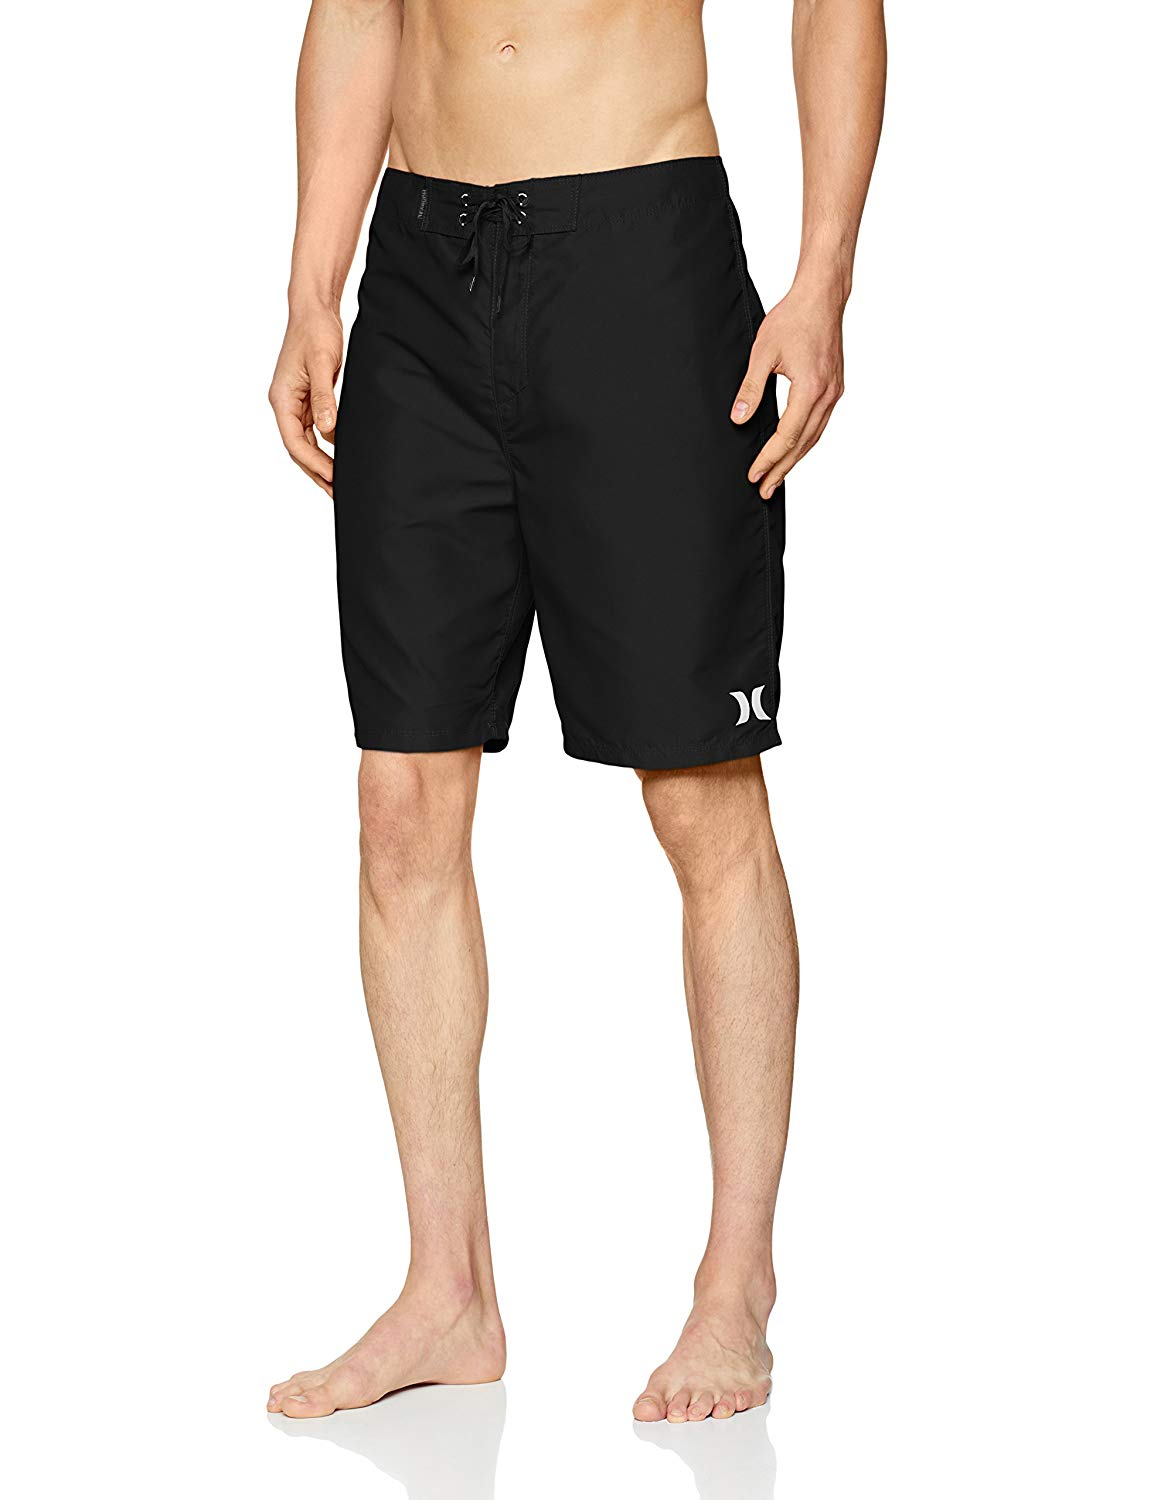 0402582c7c Cheap Hurley Boardshorts, find Hurley Boardshorts deals on line at ...